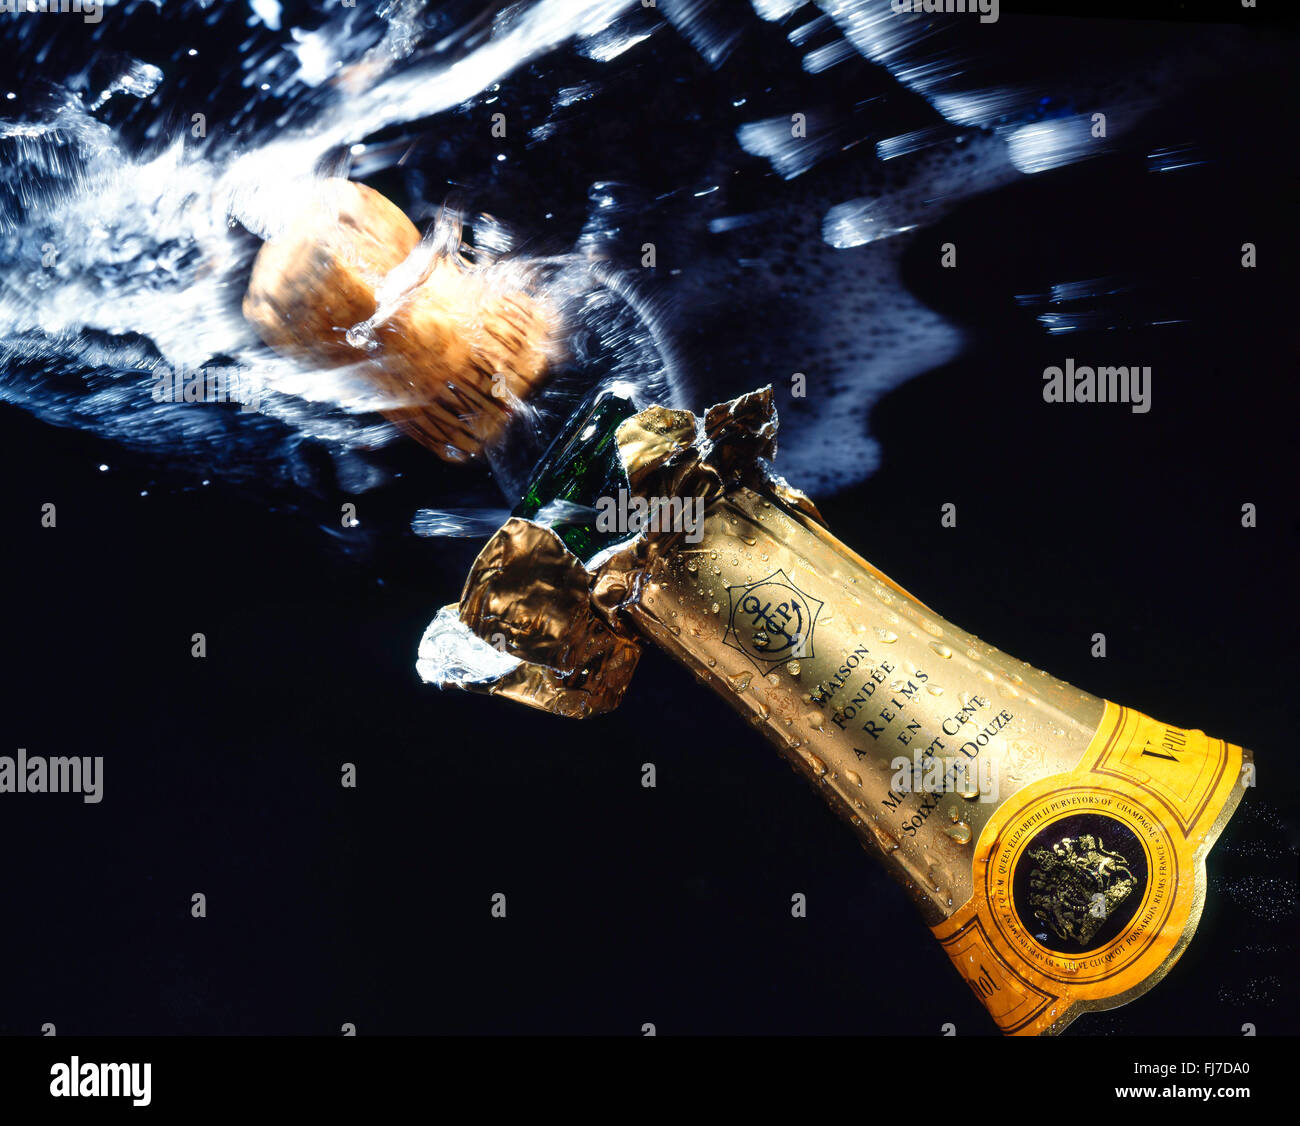 Veuve Clicquot champagne cork popping, London, England, United Kingdom - Stock Image